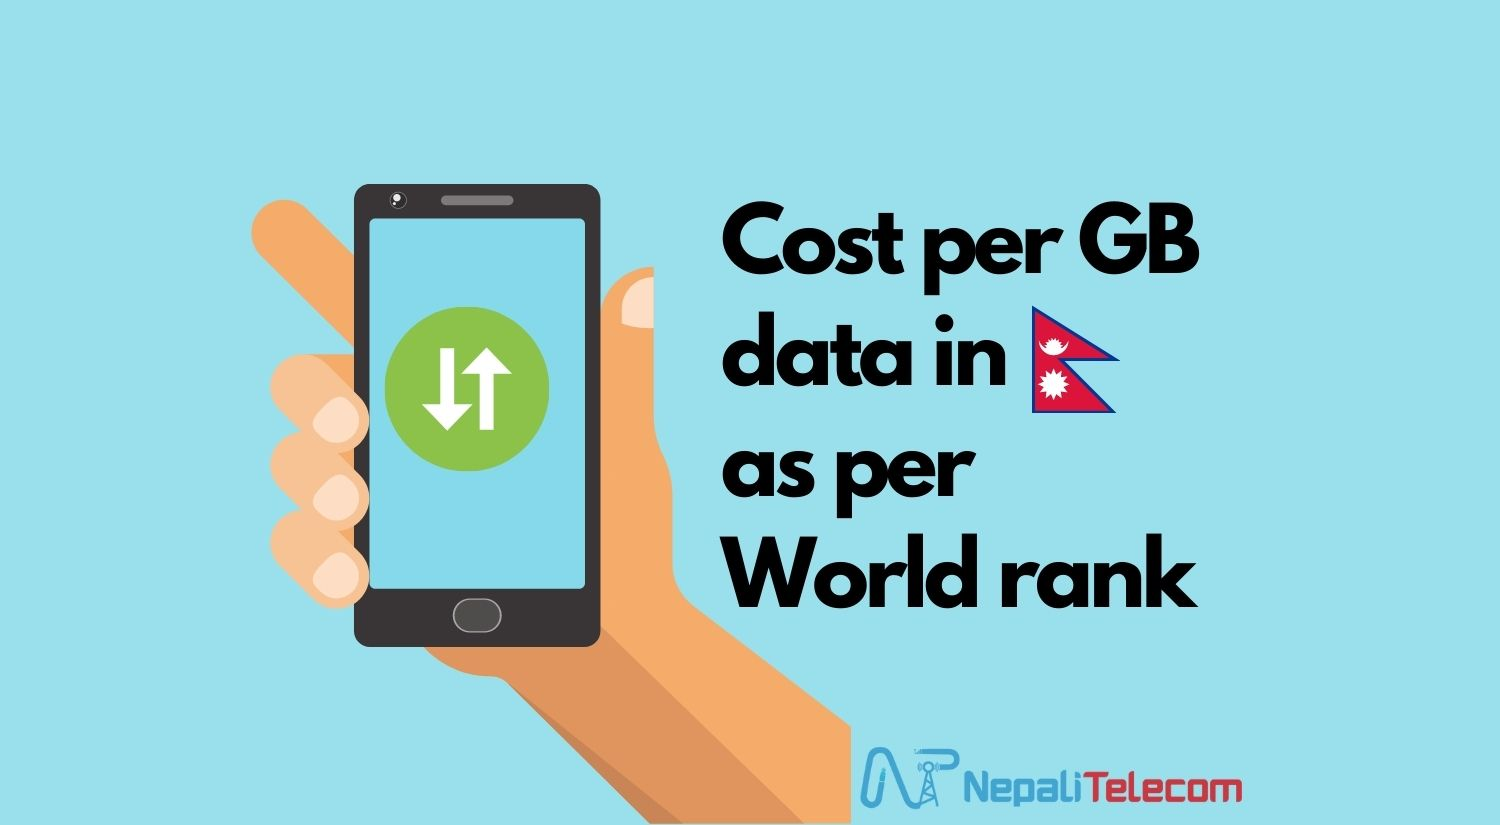 Cost per GB mobile data in Nepal and work rank